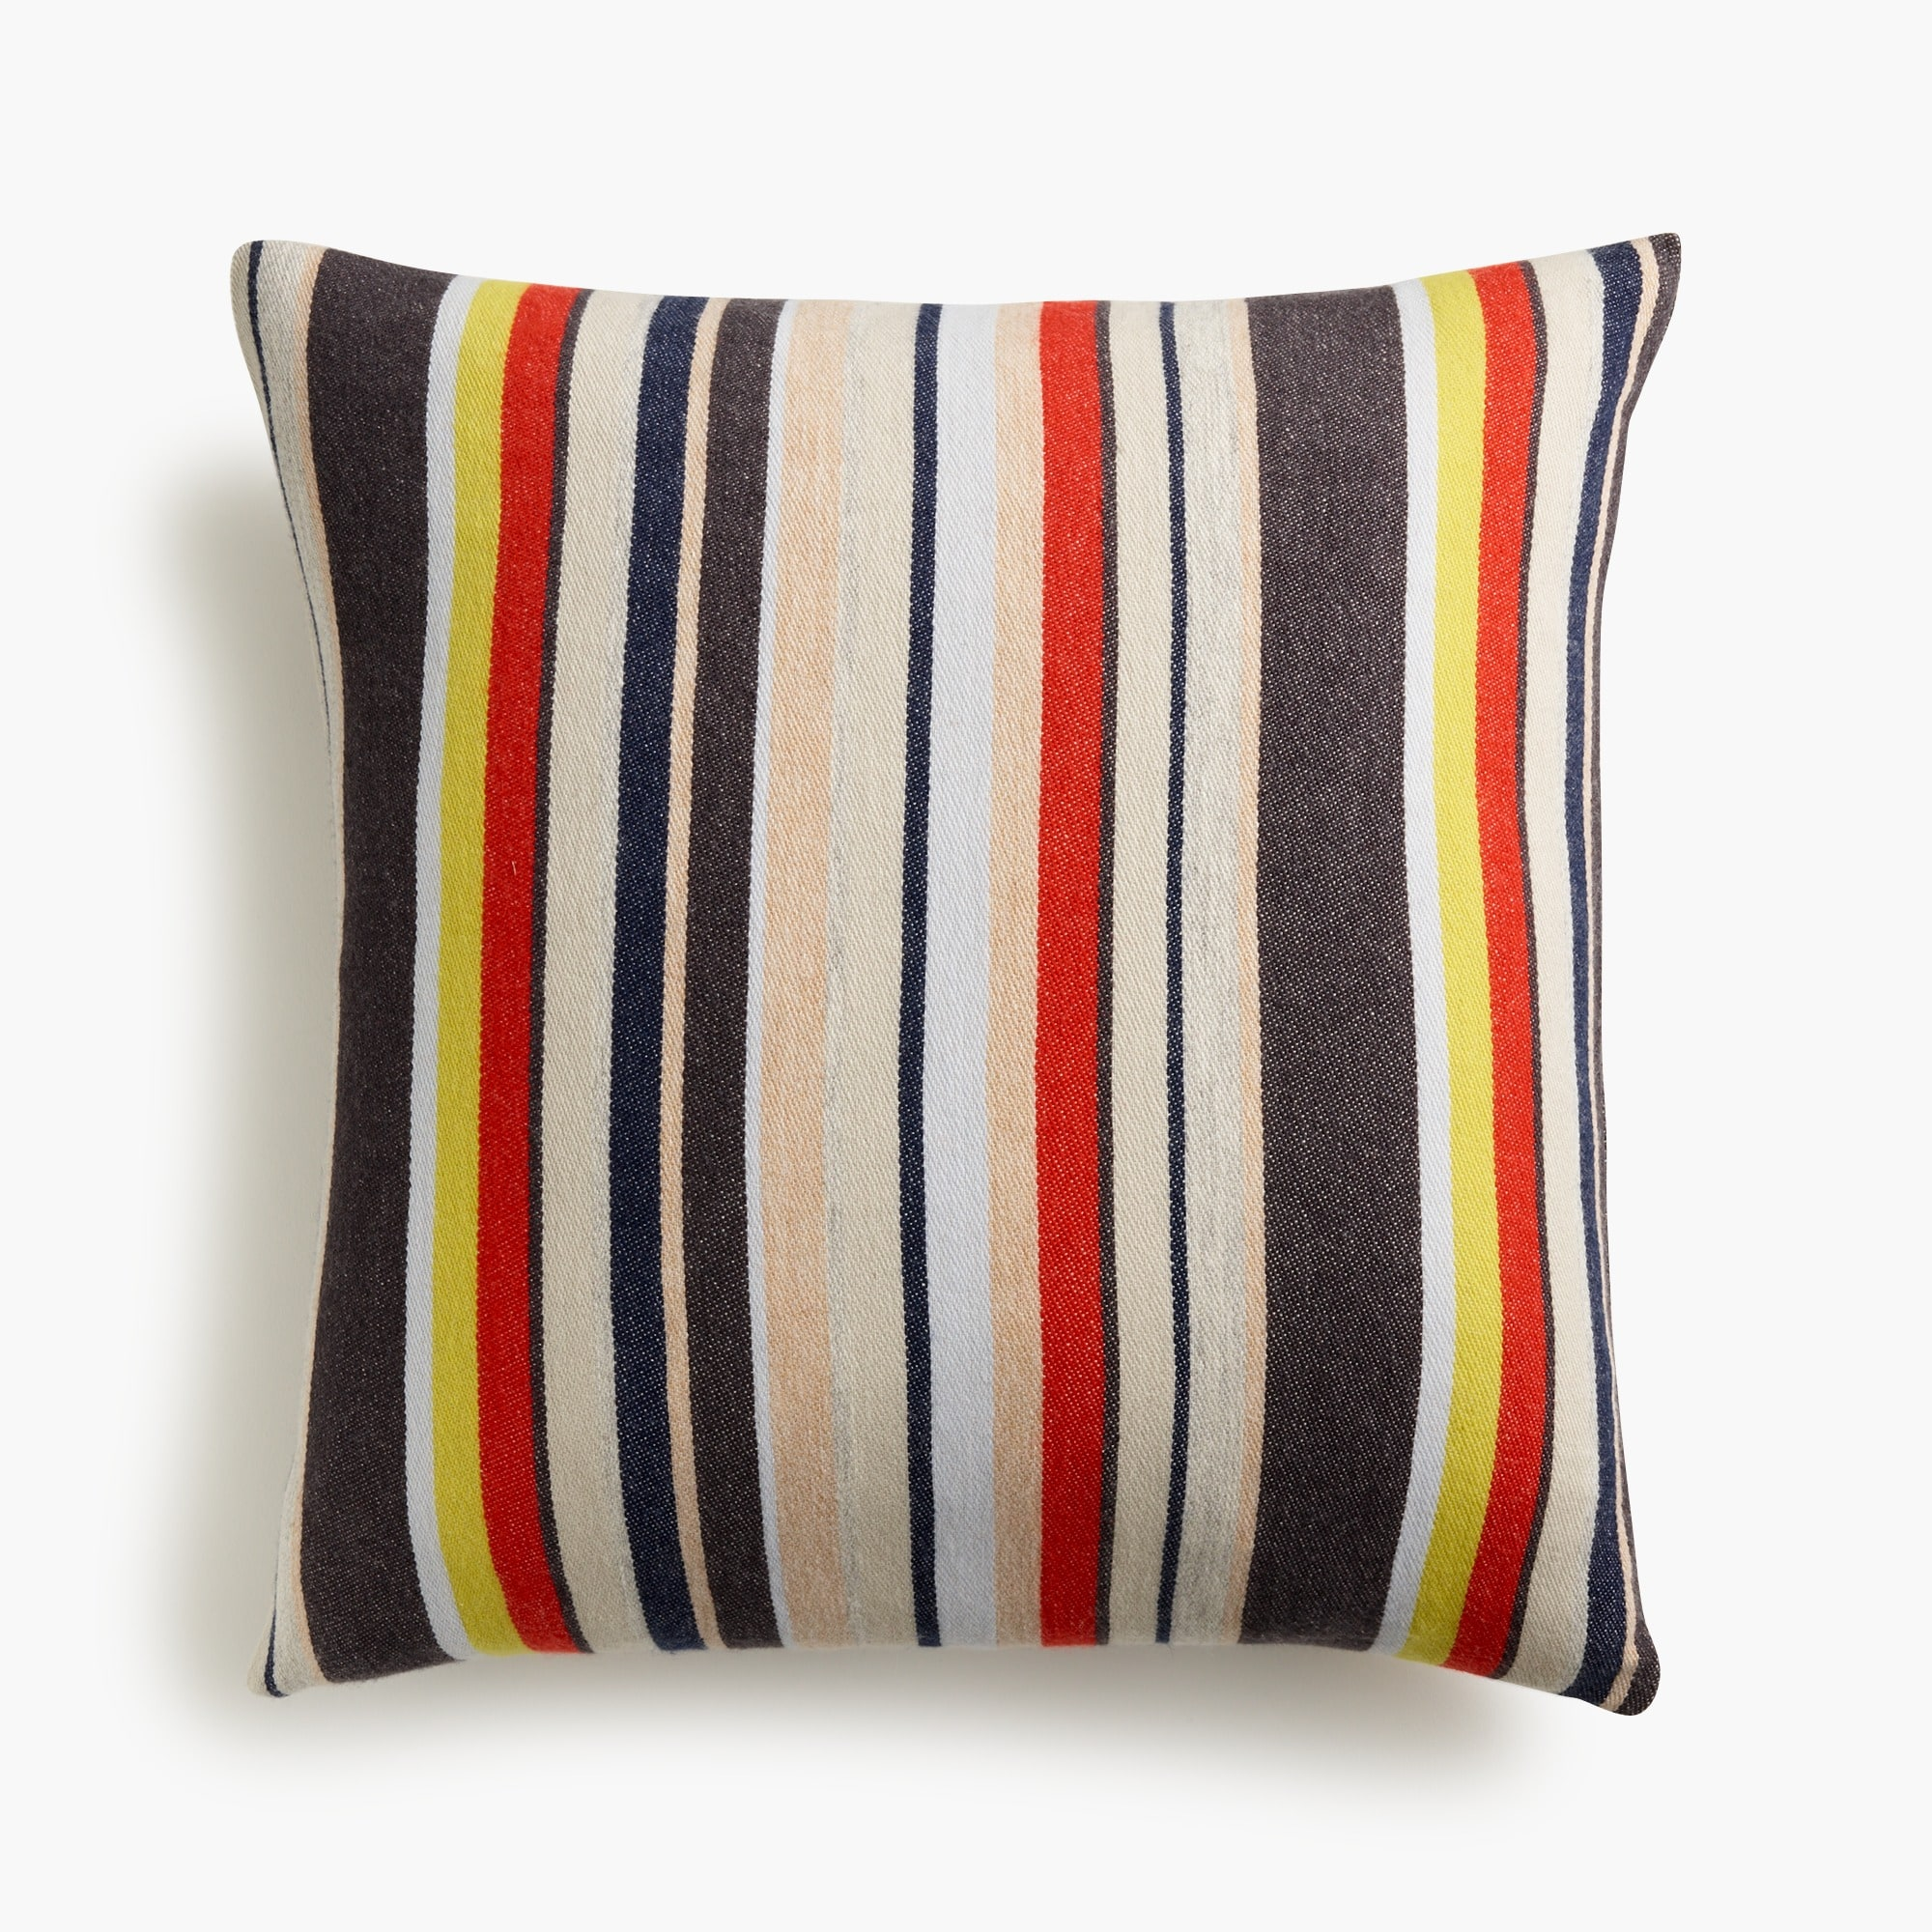 Image 3 for J.Crew Home multistripe pillow